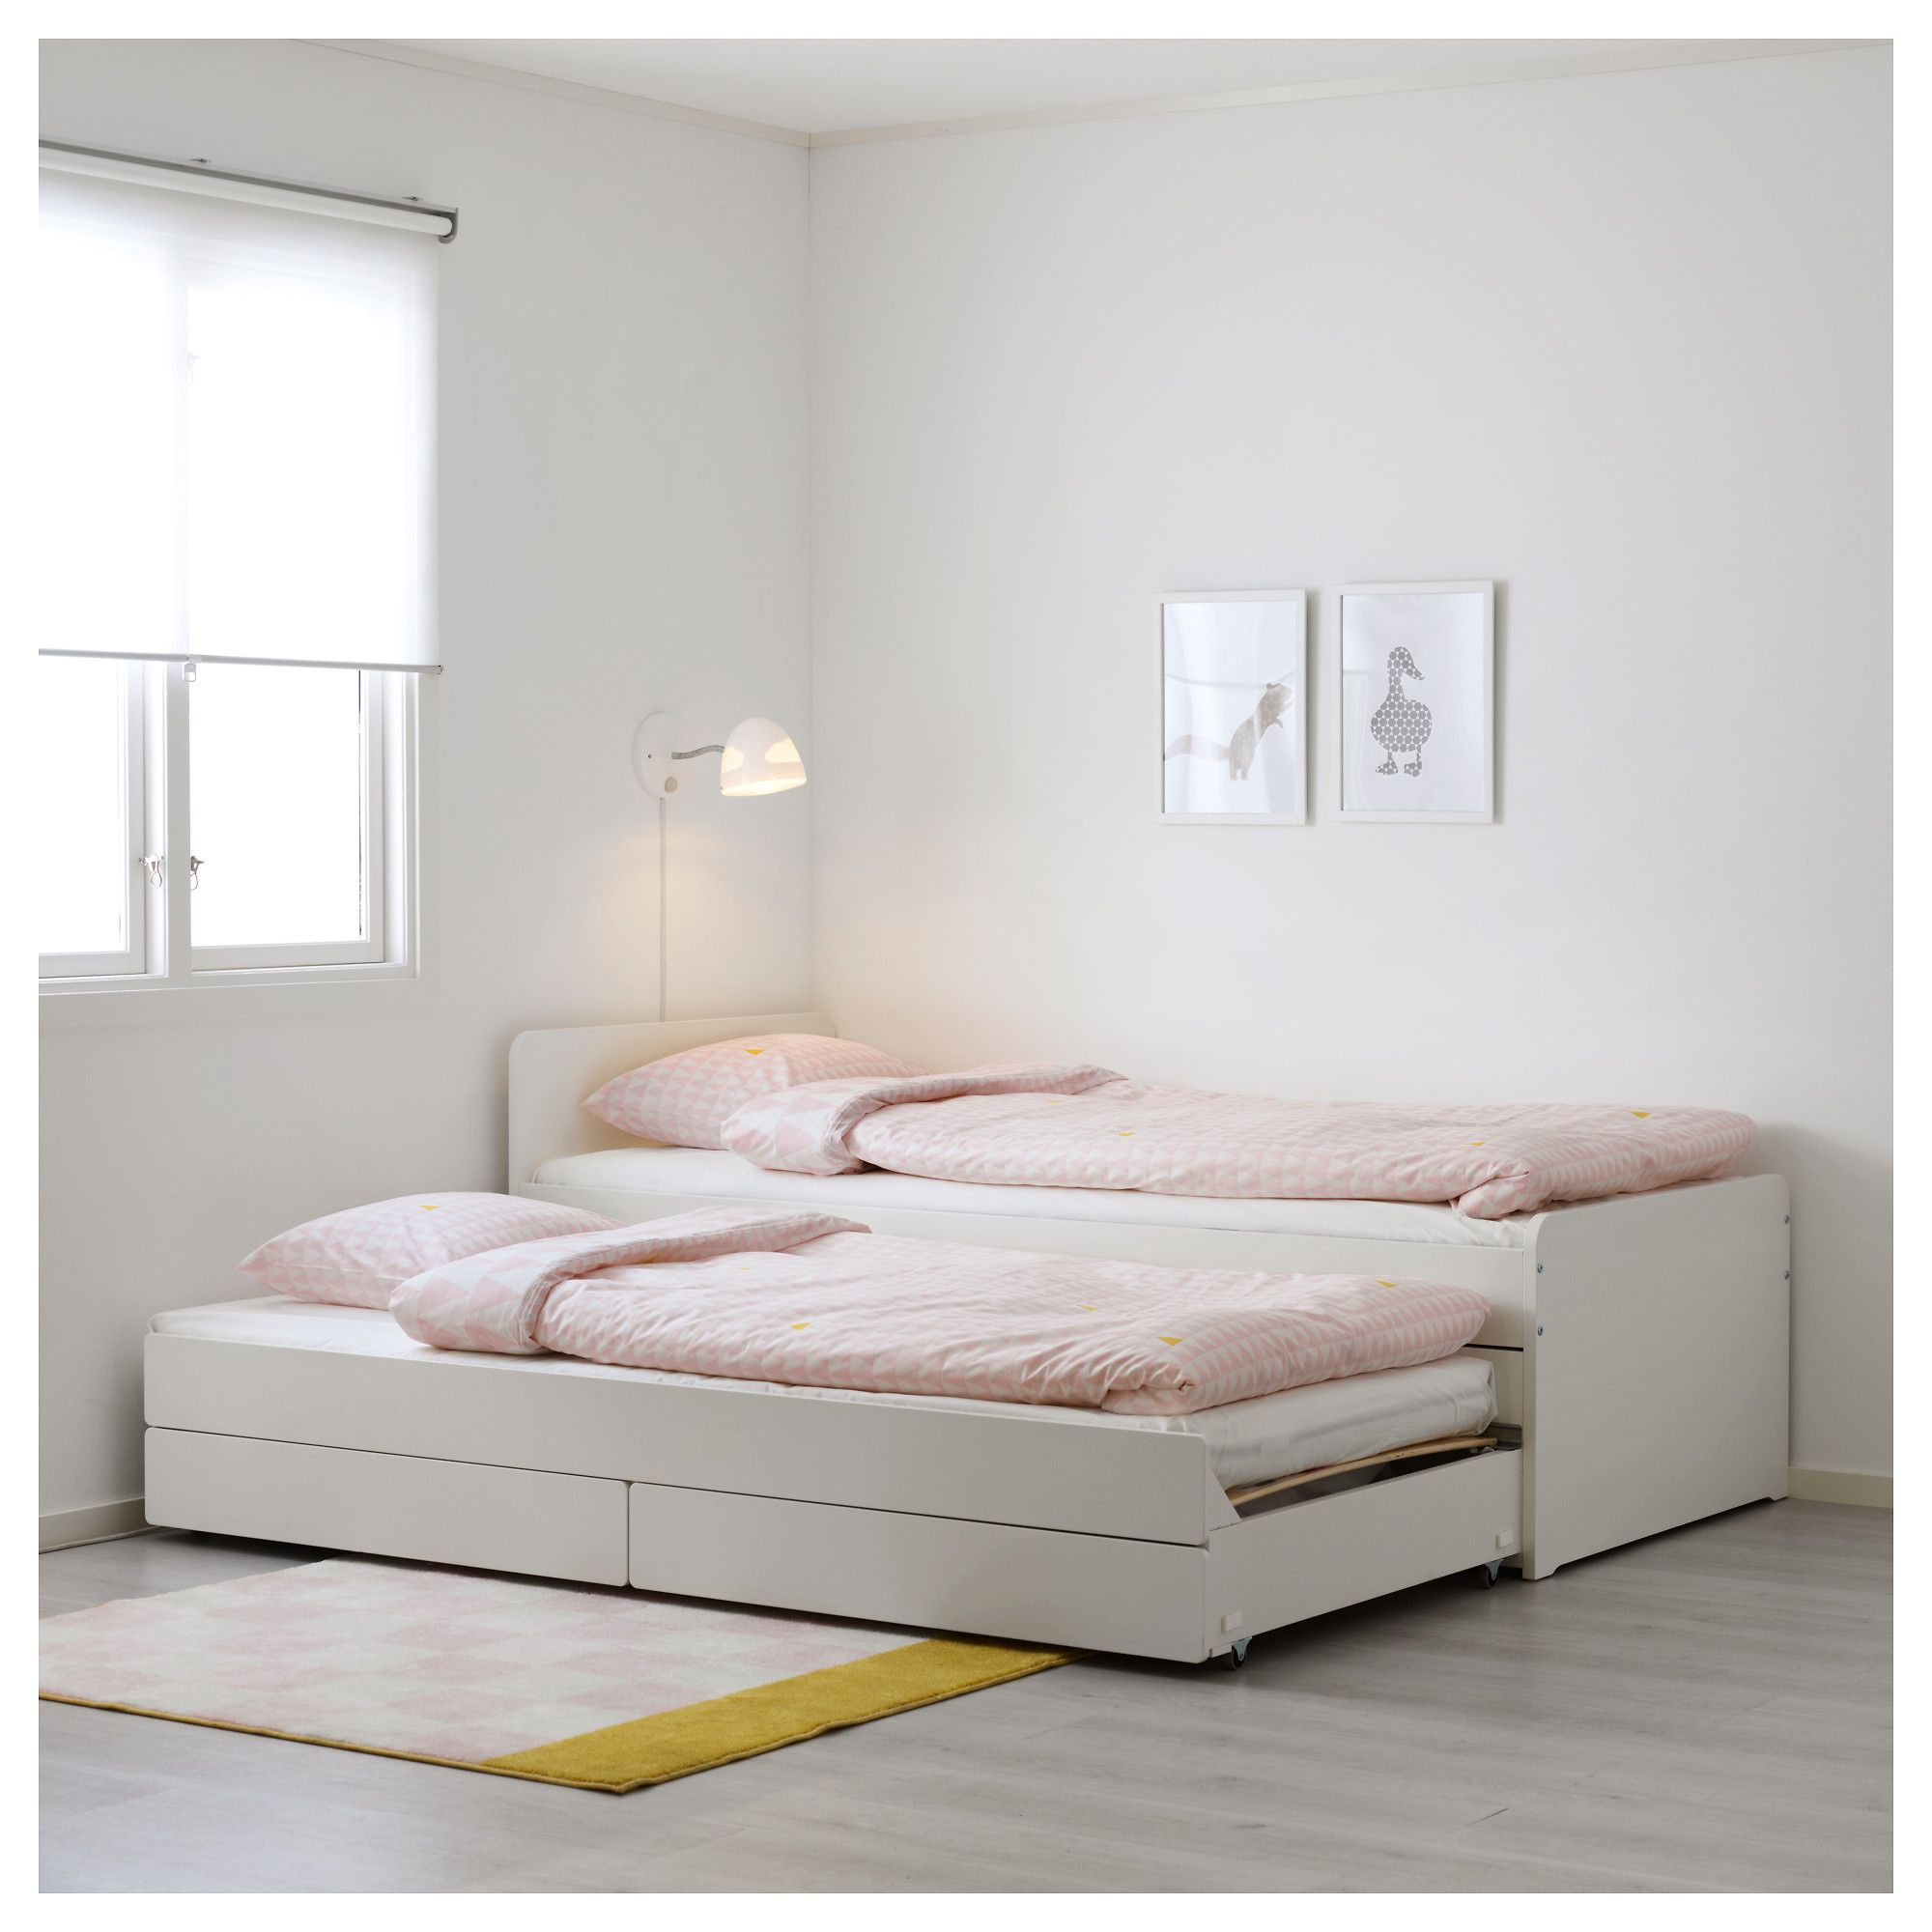 Ikea Släkt Pull Out Bed With Storage White Details